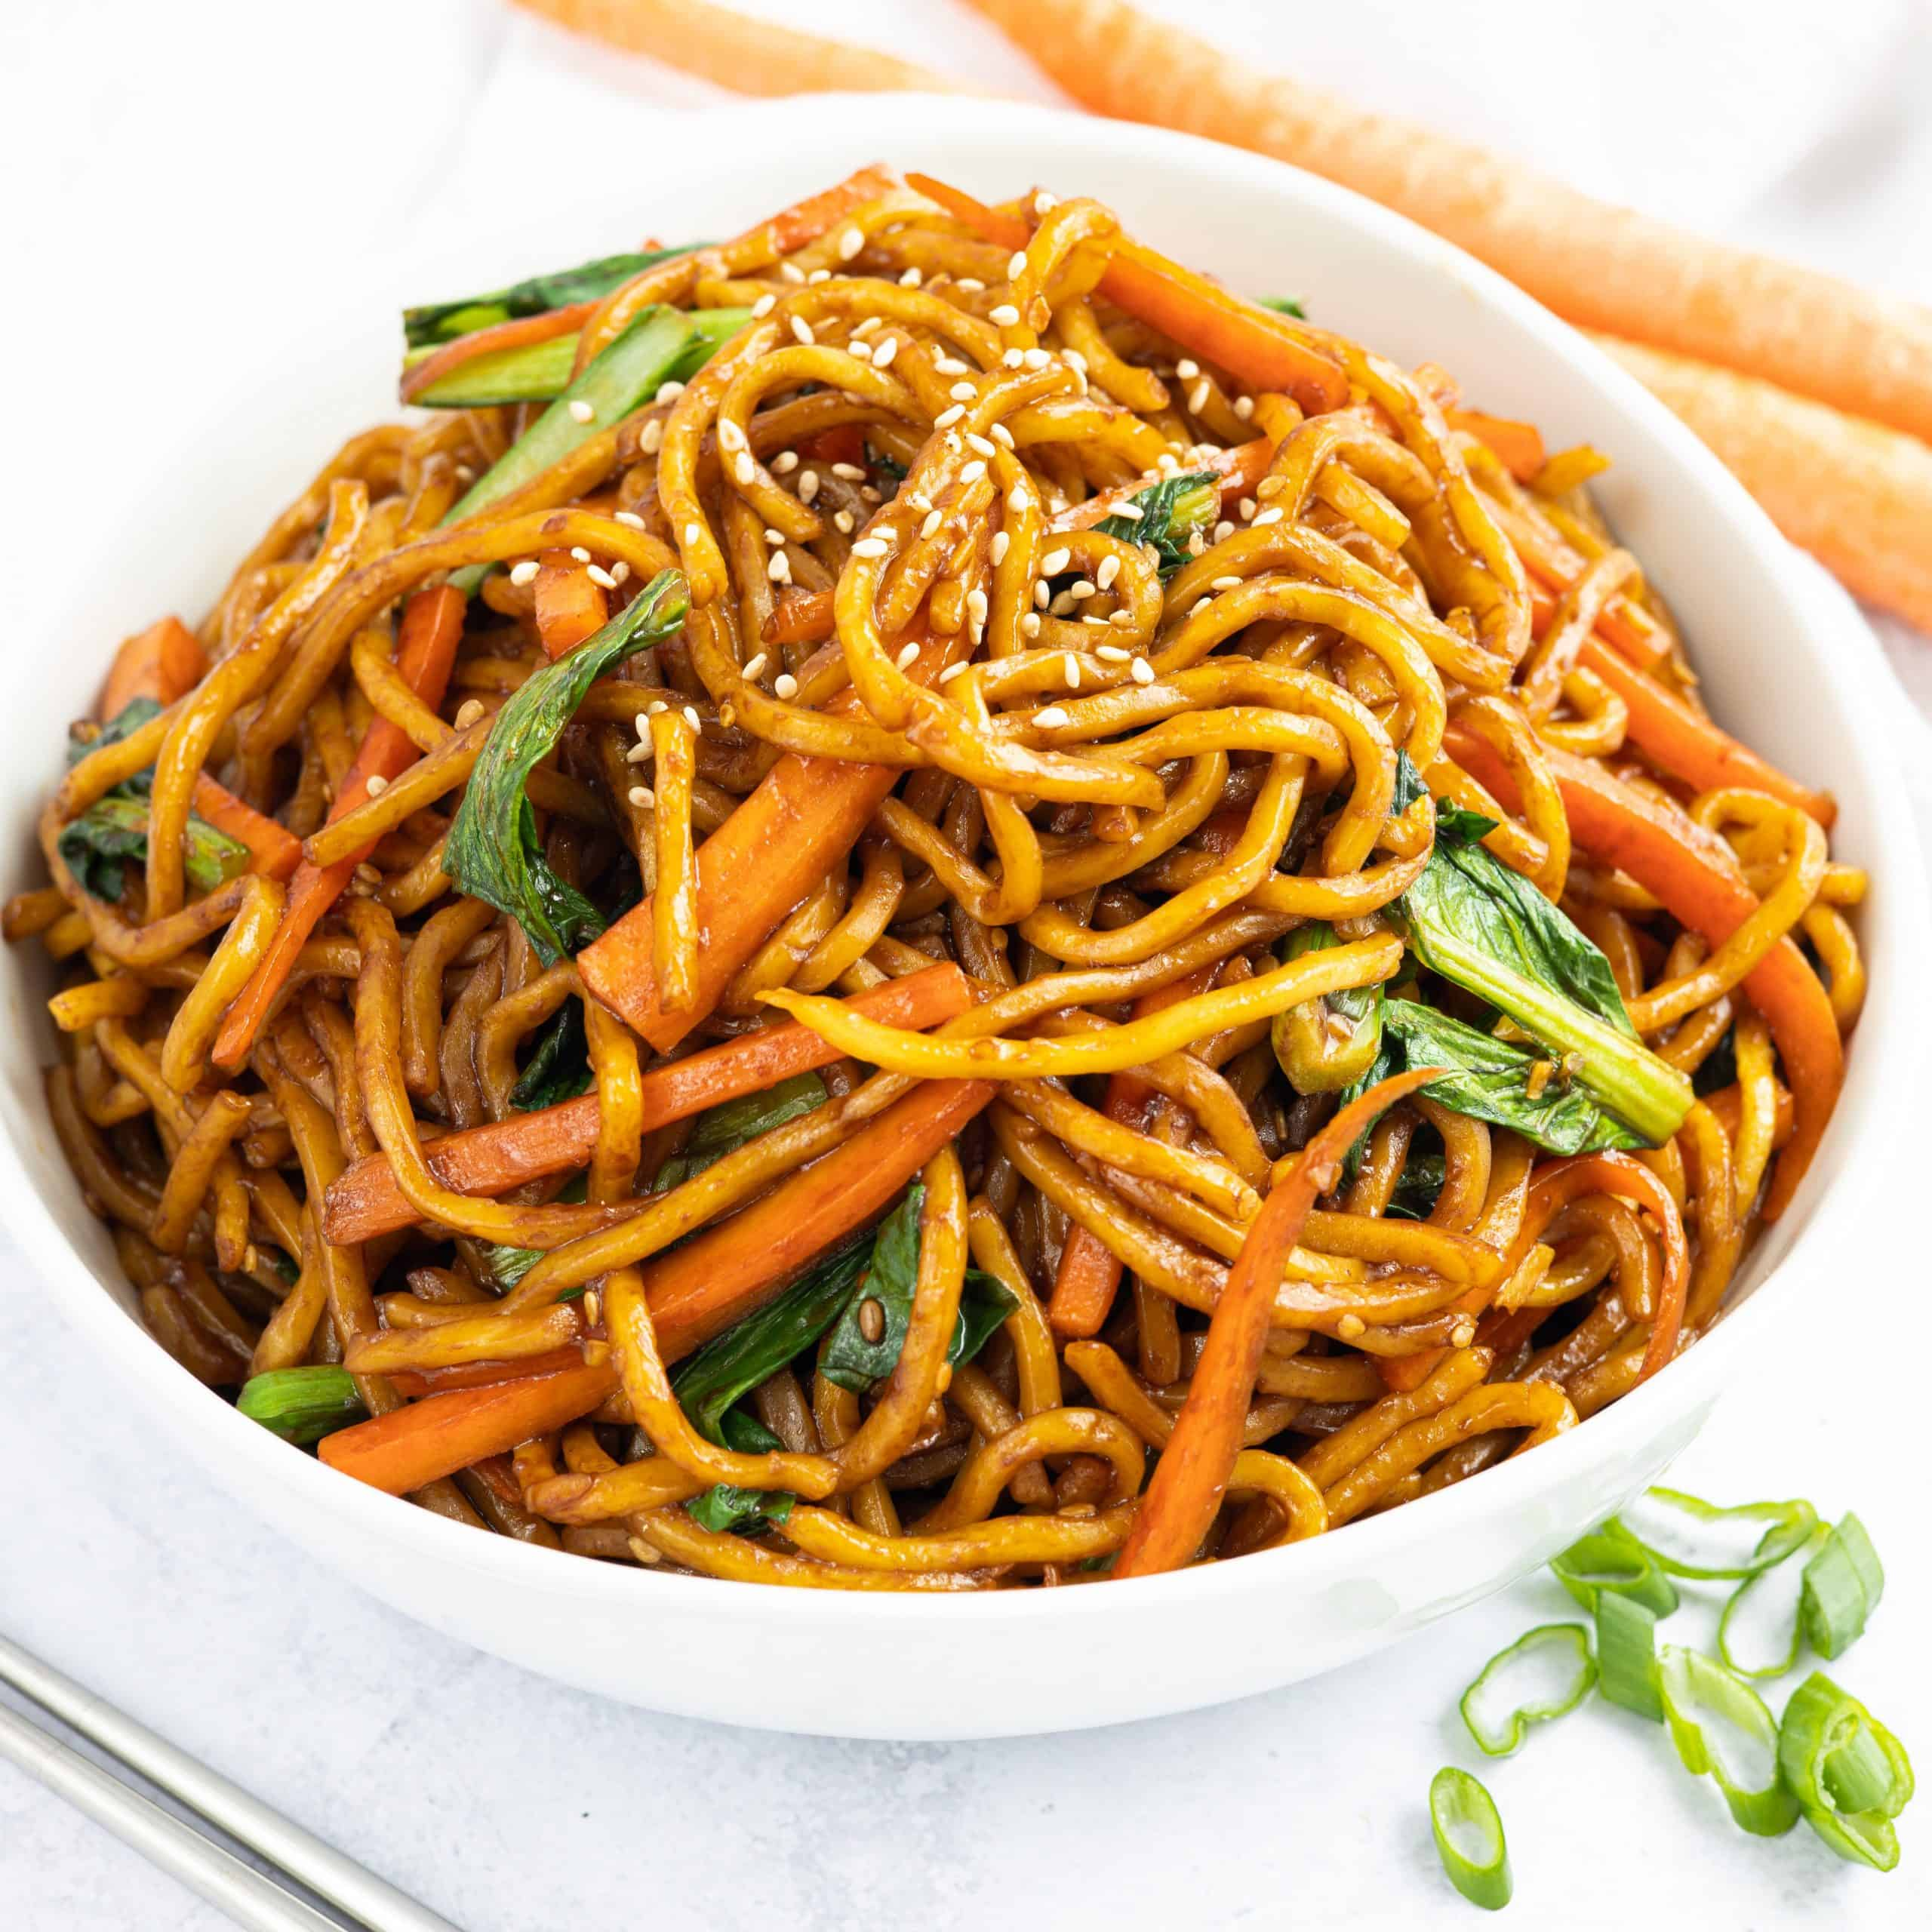 Vegan Asian Sesame Noodles